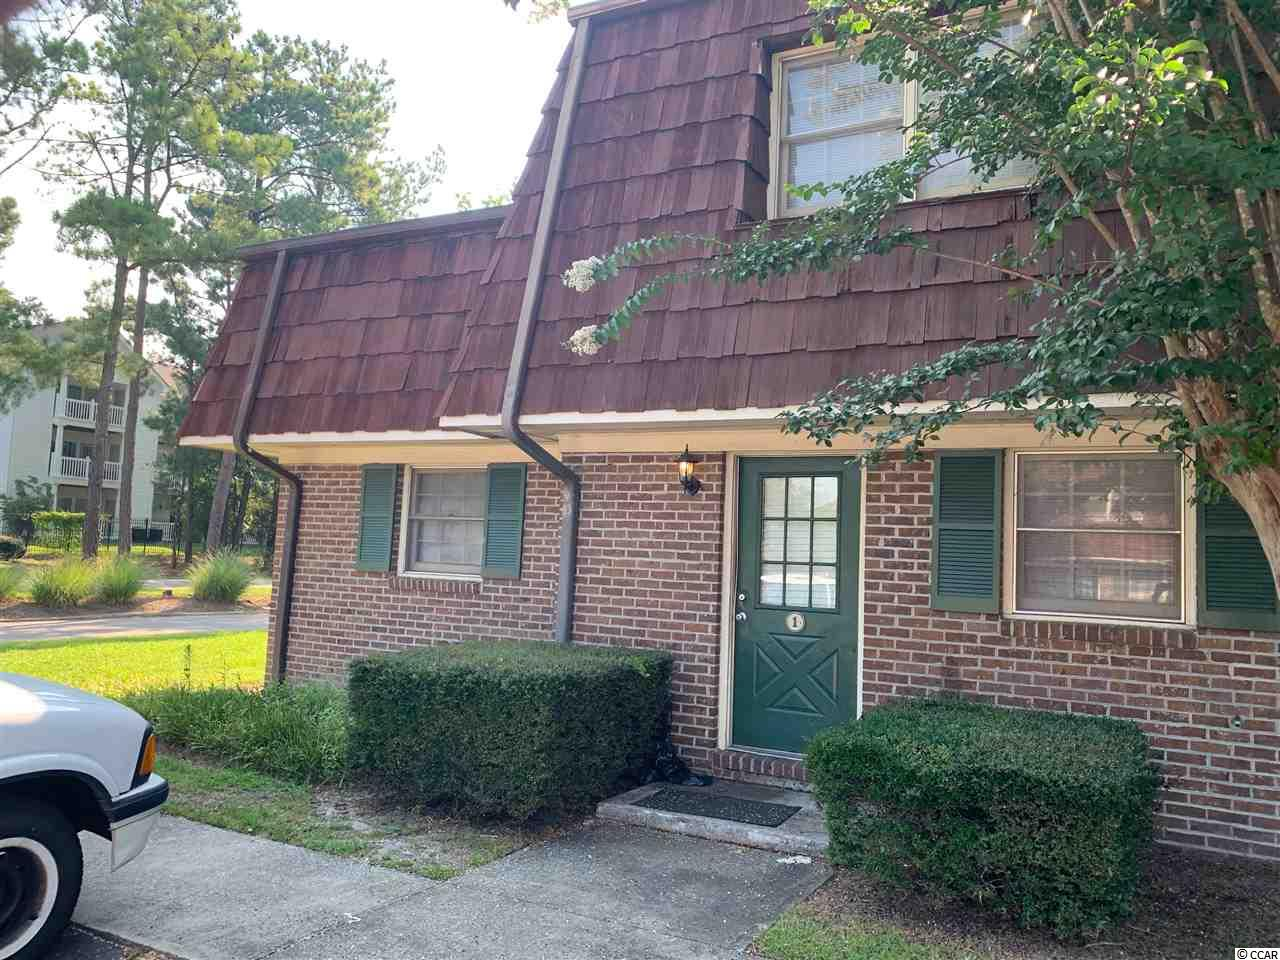 WHAT A NICE UNIT IN CAROLINA PINES.  END UNIT THREE BEDROOMS. WALK TO CCU.  EXCELLENT INVESTMENT OPPORTUNITY.